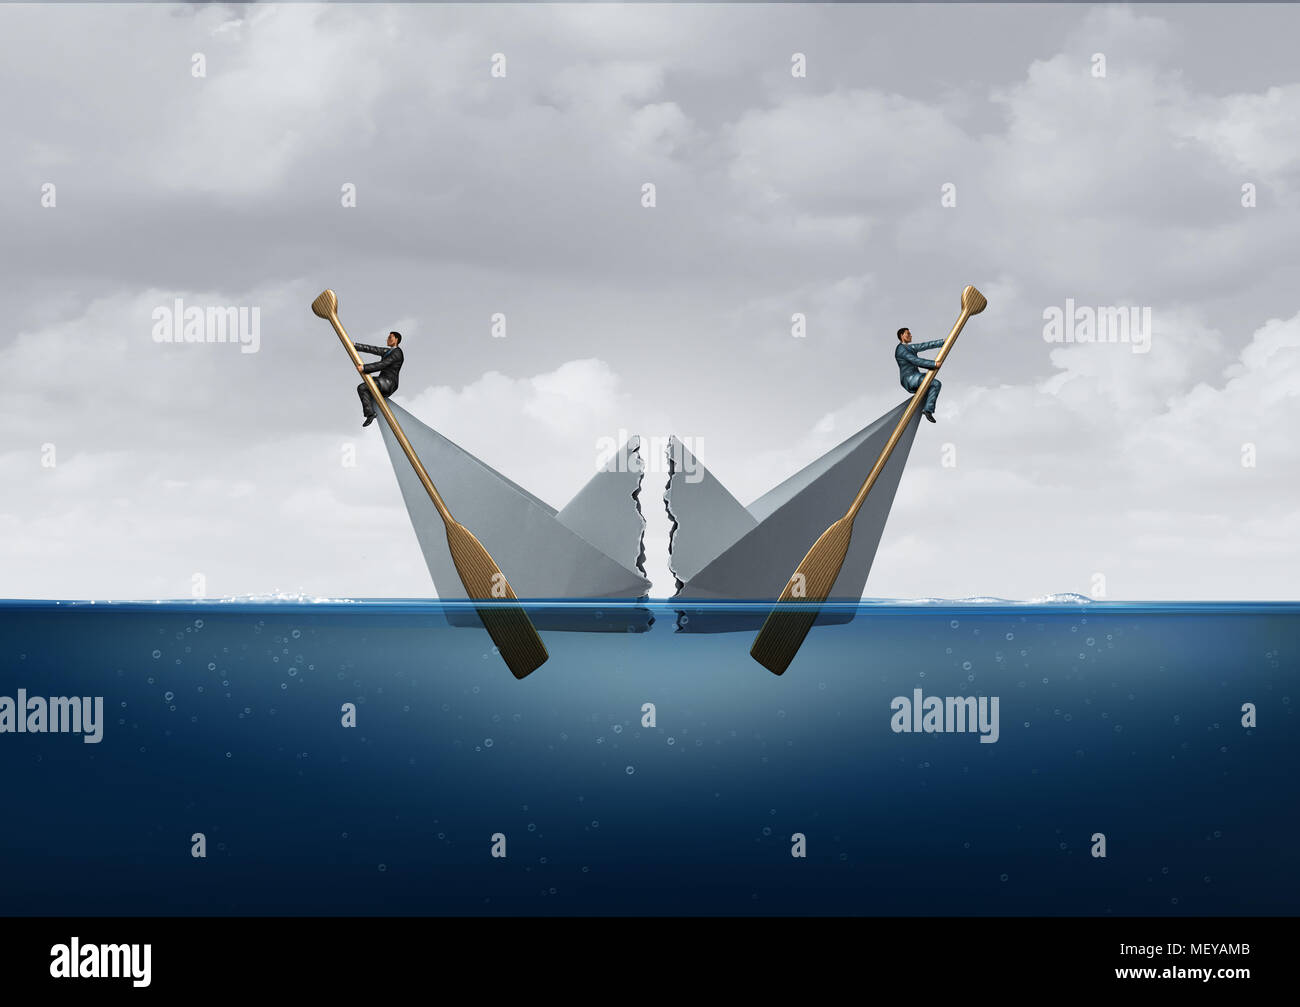 Business separation and business disagreement as two opposite sides divide a paper boat as a metaphor for opposing directions. - Stock Image